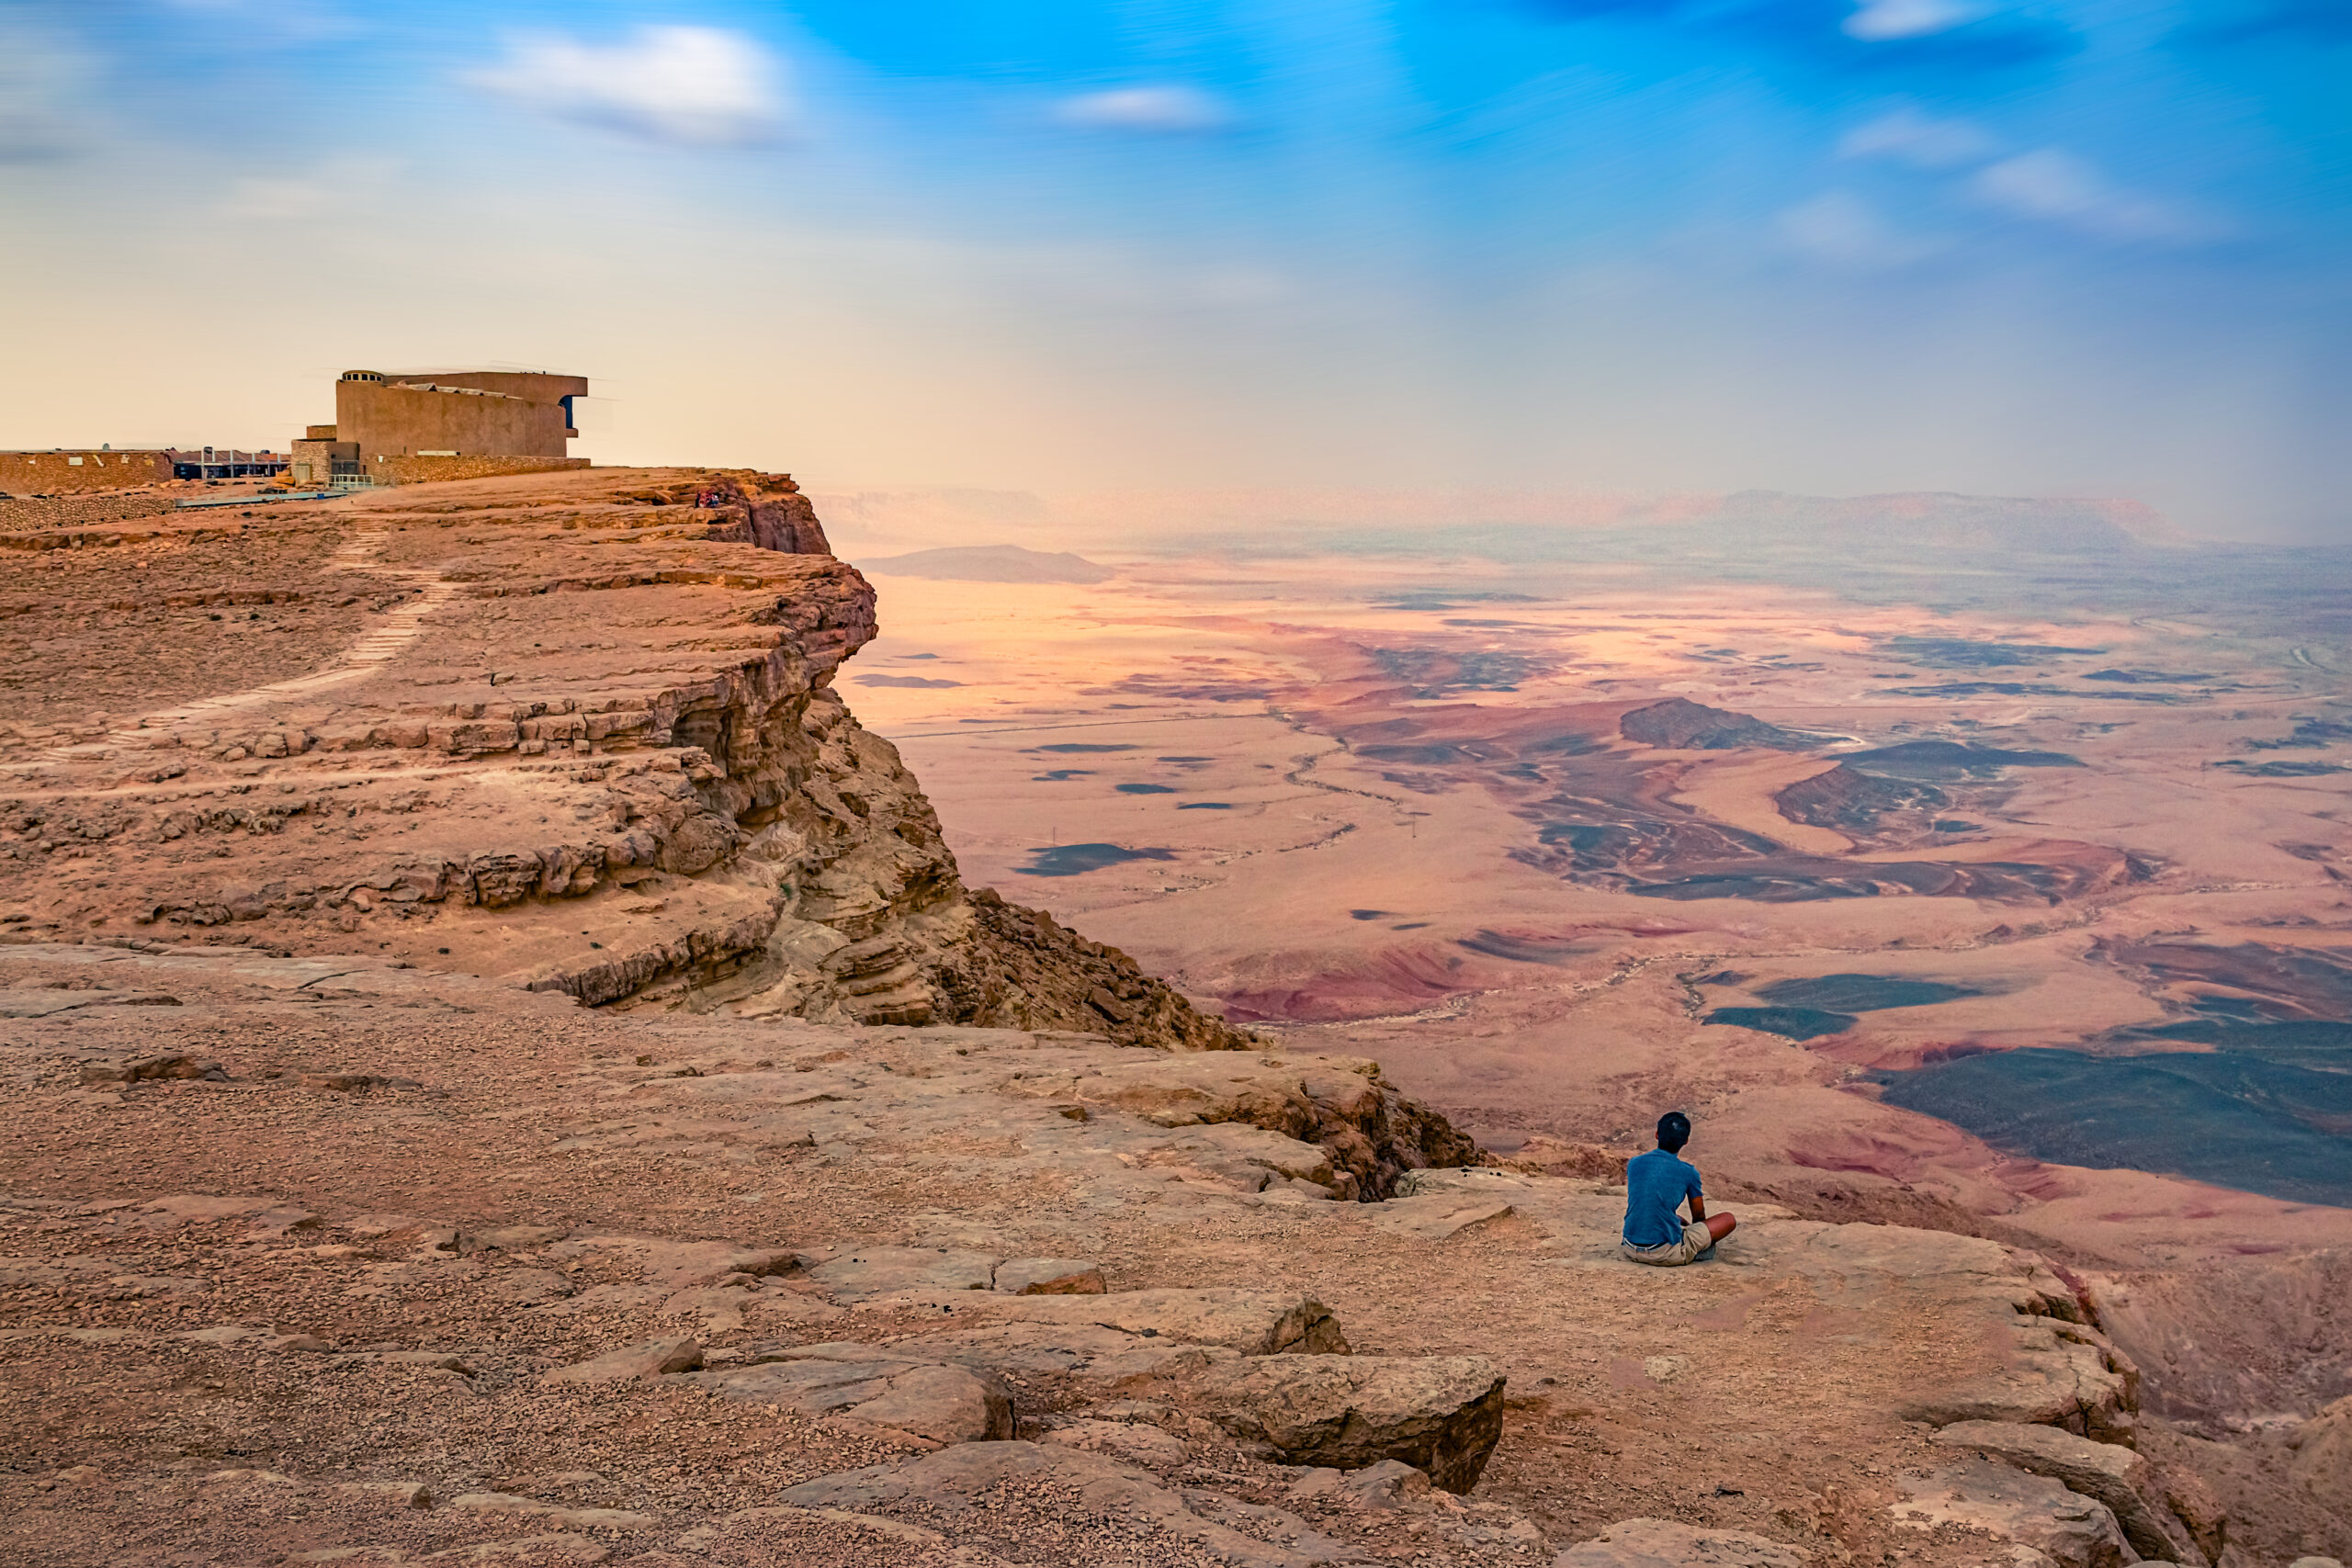 Ramon Crater in the Negev desert is the largest erosive crater in the world.